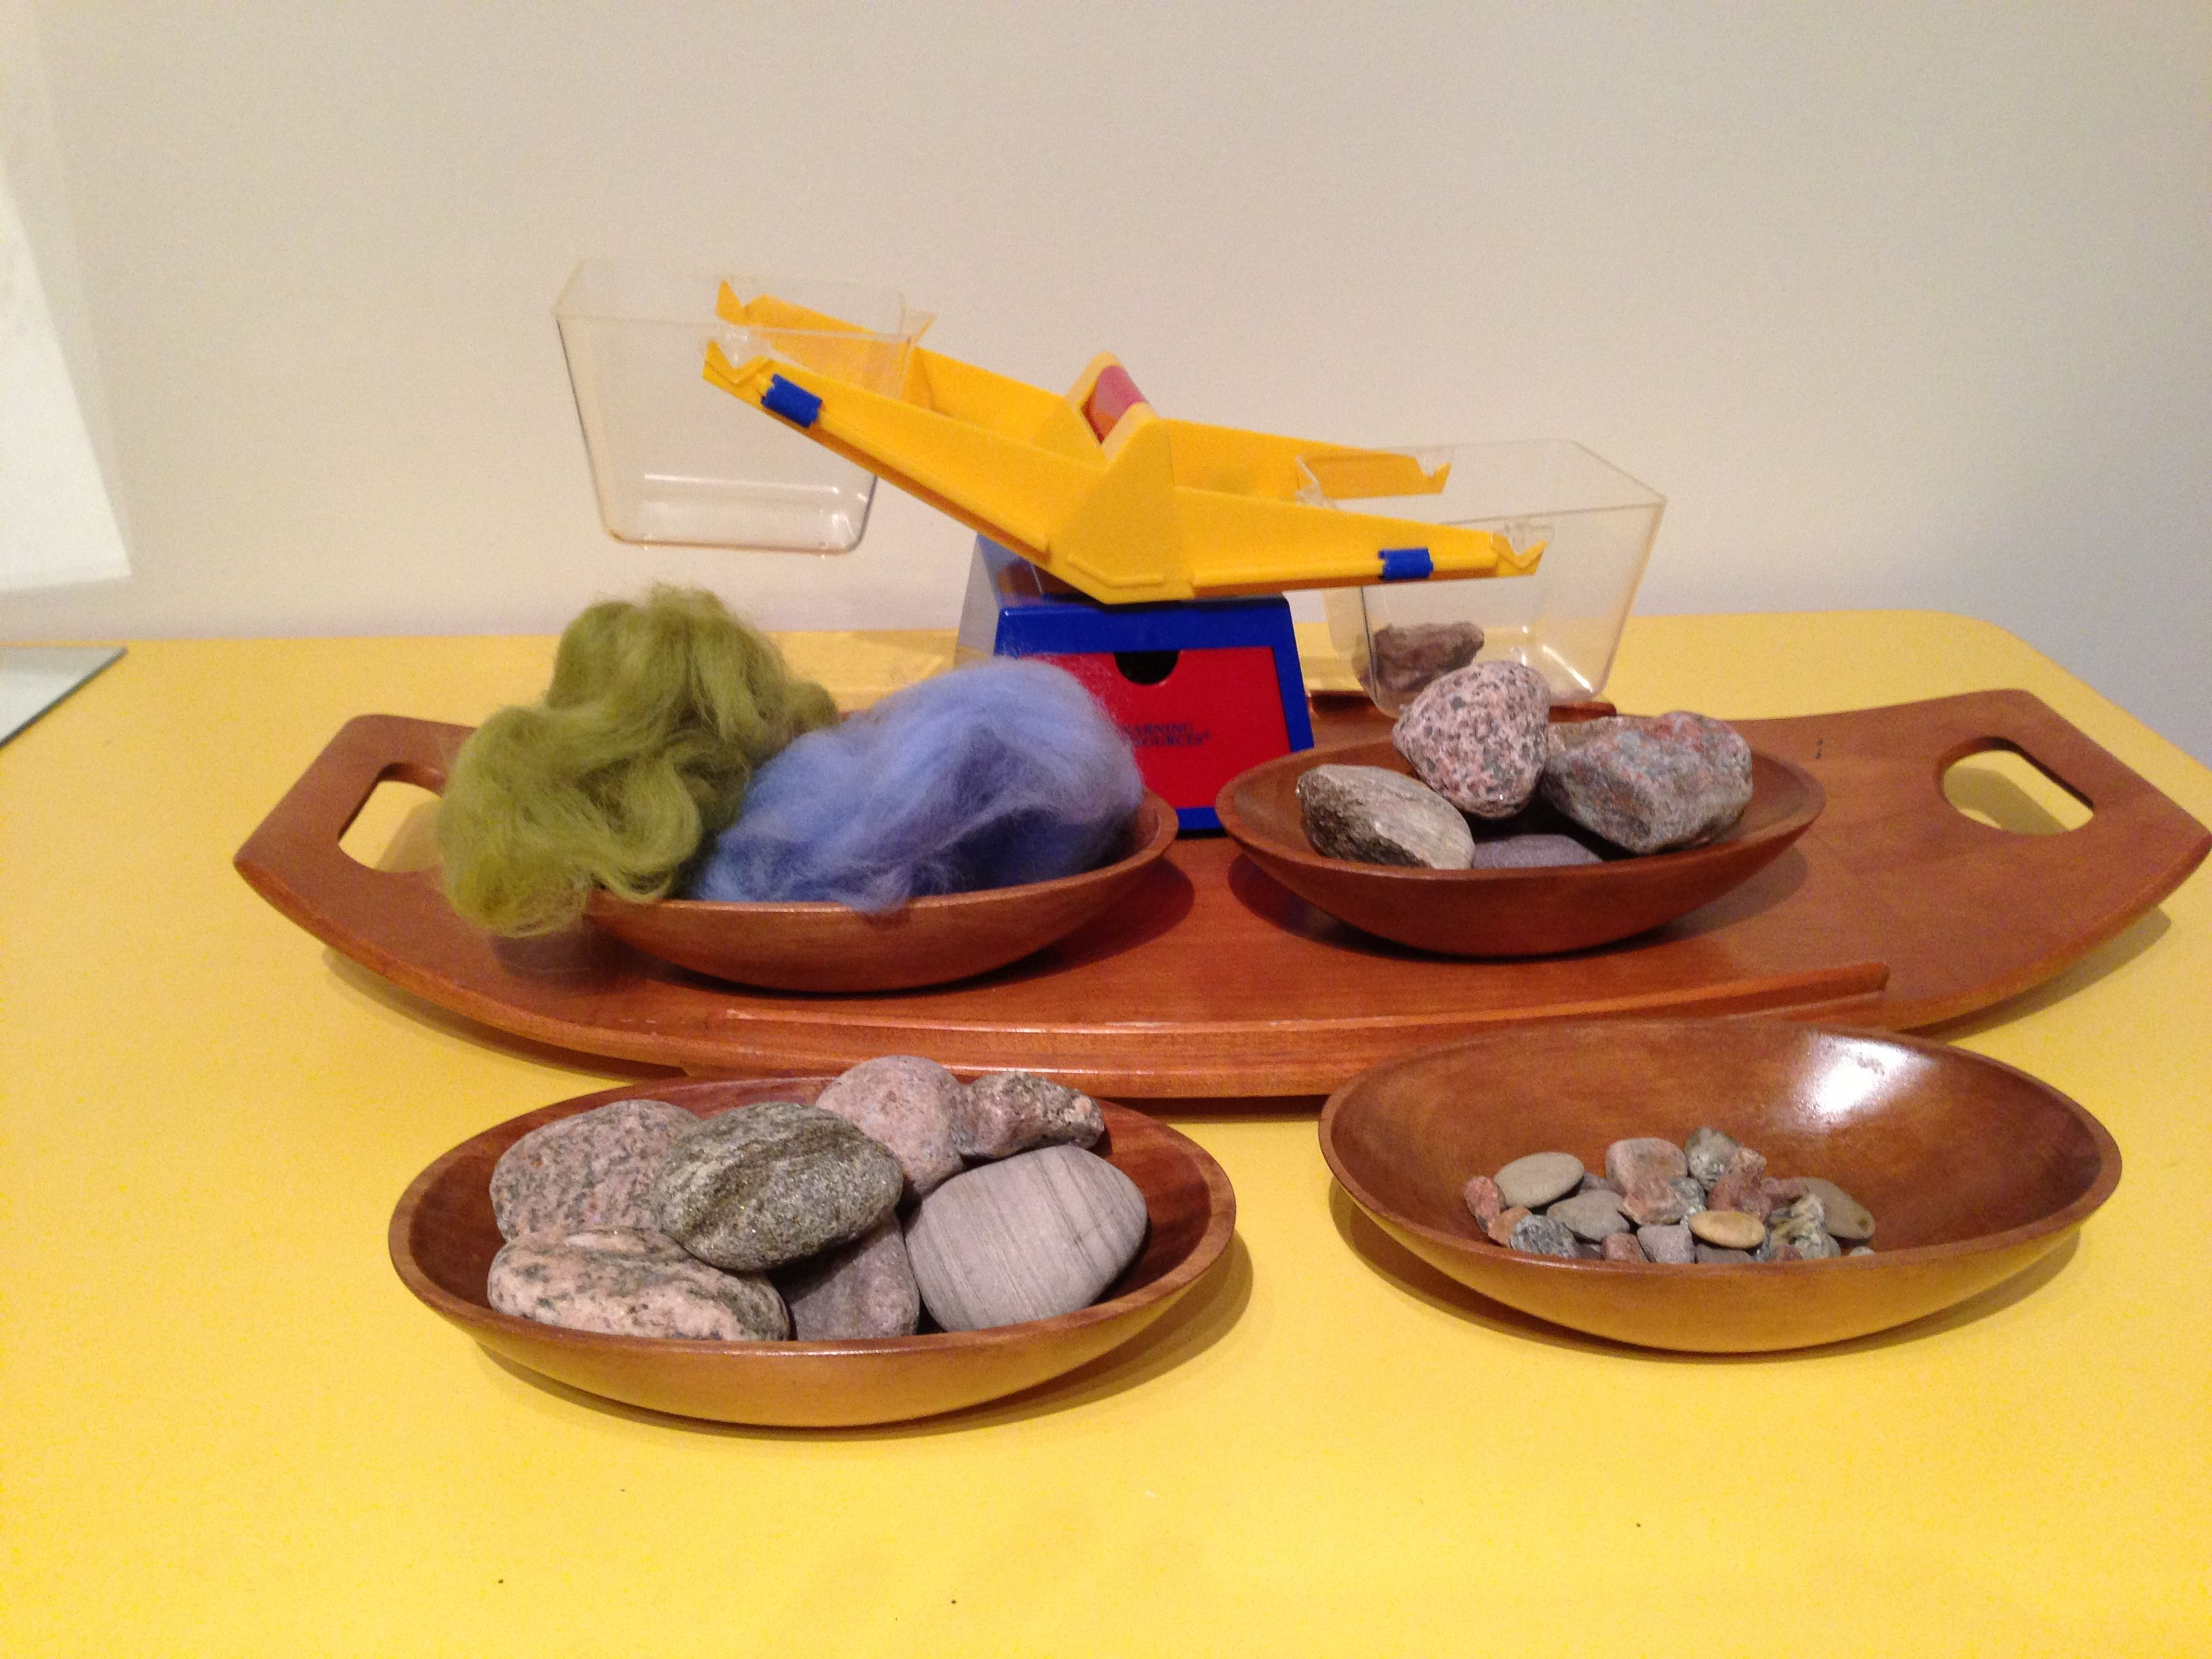 Invitation To Explore Weight With Balance Scale Rocks And